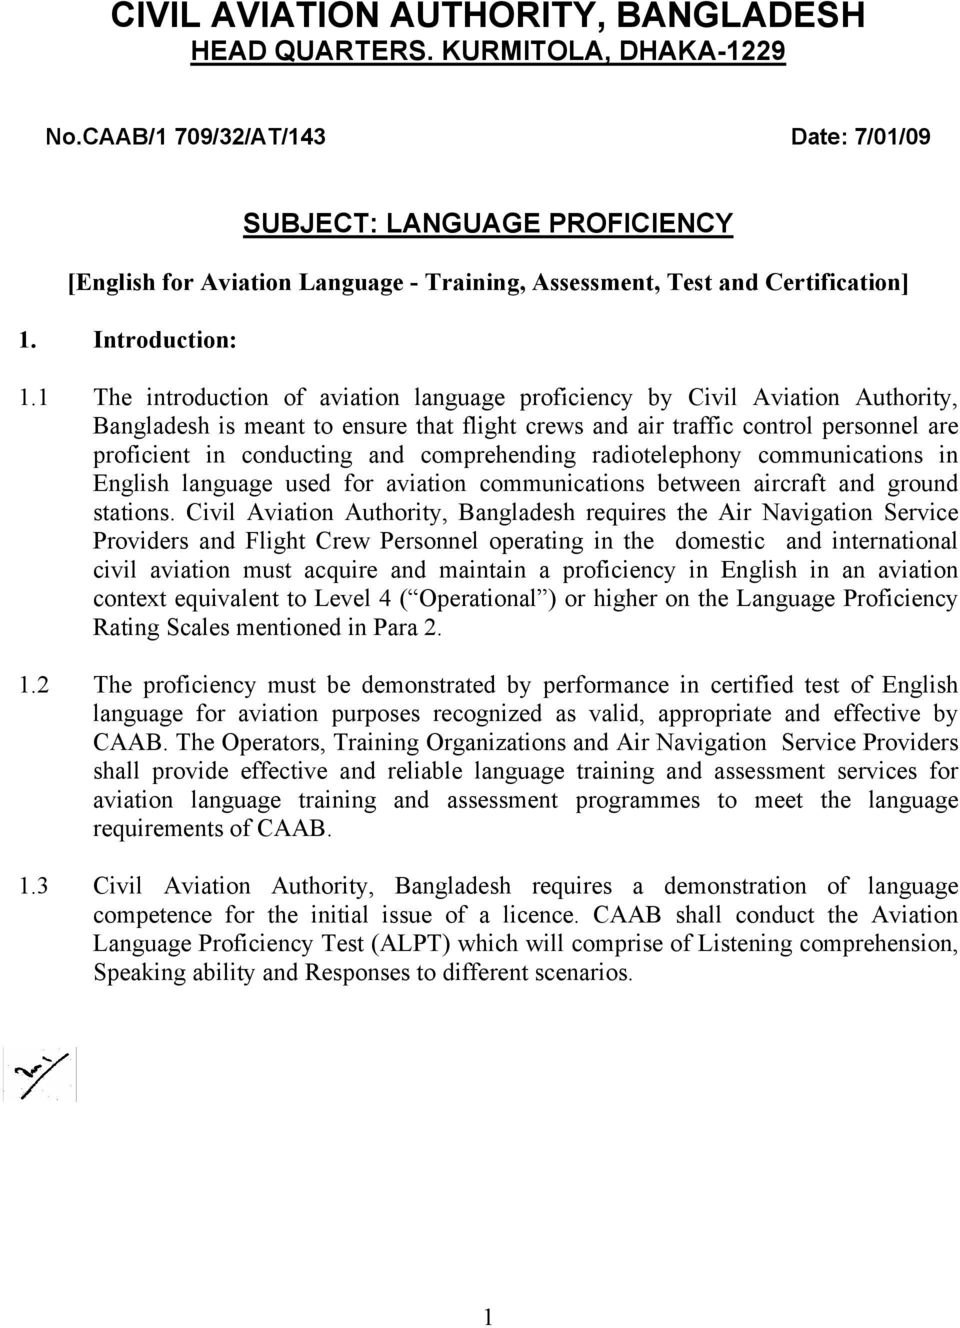 1 The introduction of aviation language proficiency by Civil Aviation Authority, Bangladesh is meant to ensure that flight crews and air traffic control personnel are proficient in conducting and